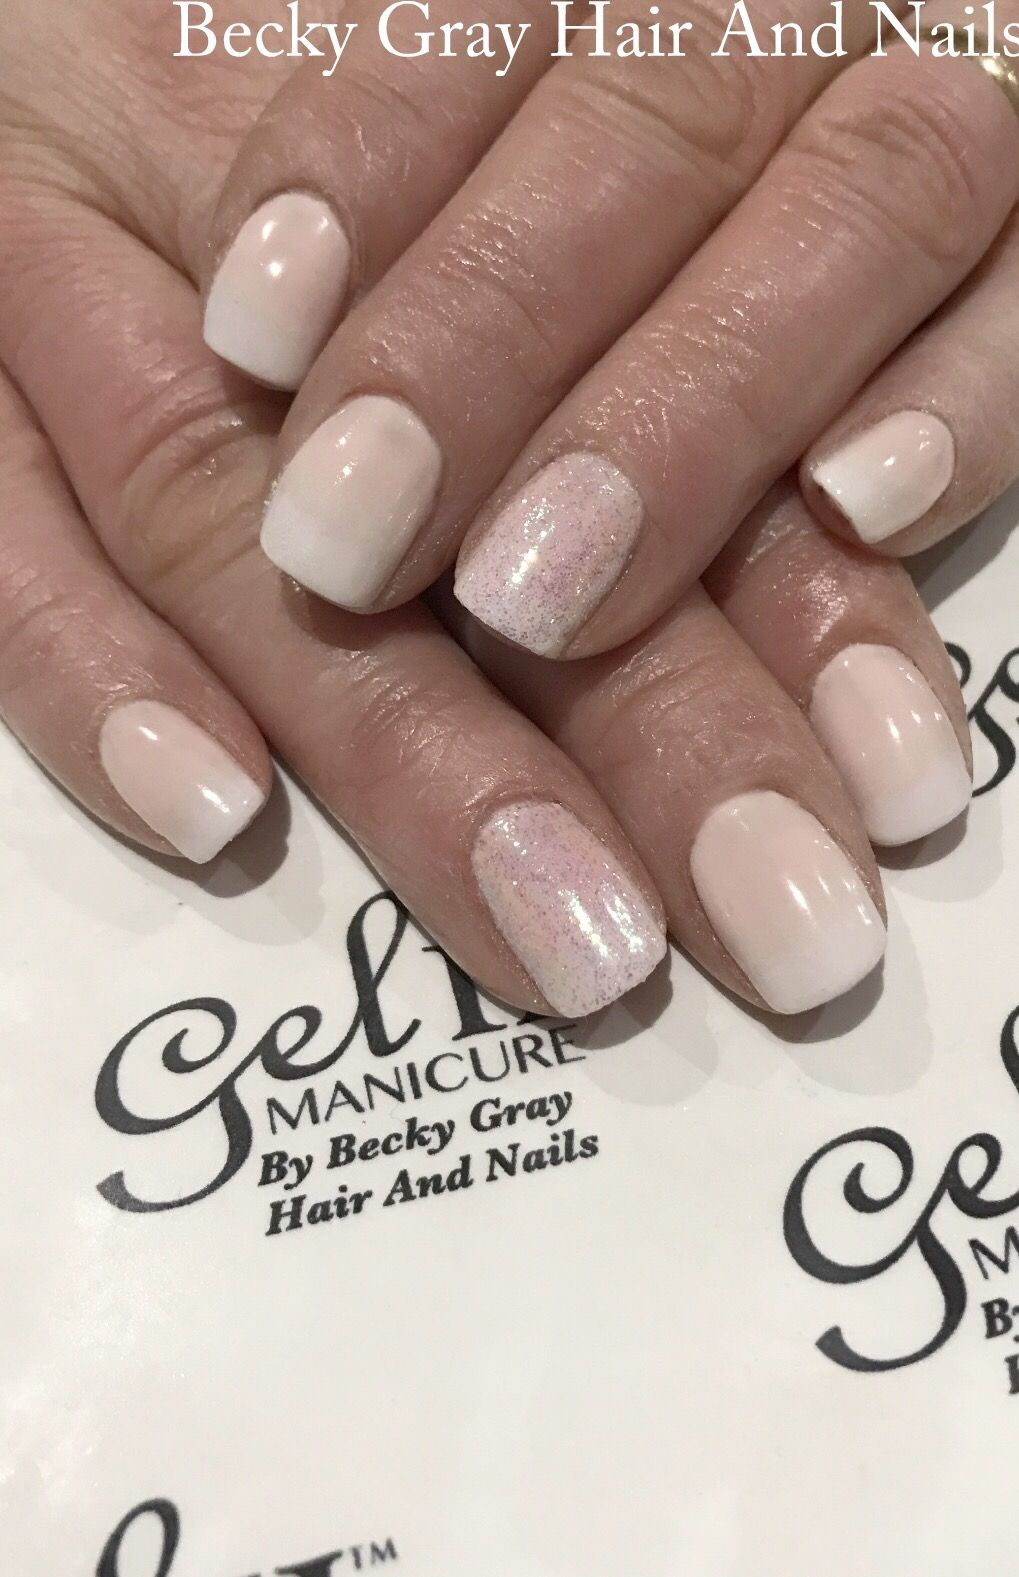 #gelii #manicure nothing at all #gel_two #magpieglitter #magpiepearl #babyboomers #frenchombre #gelnails #showscratch #scratchmagazine